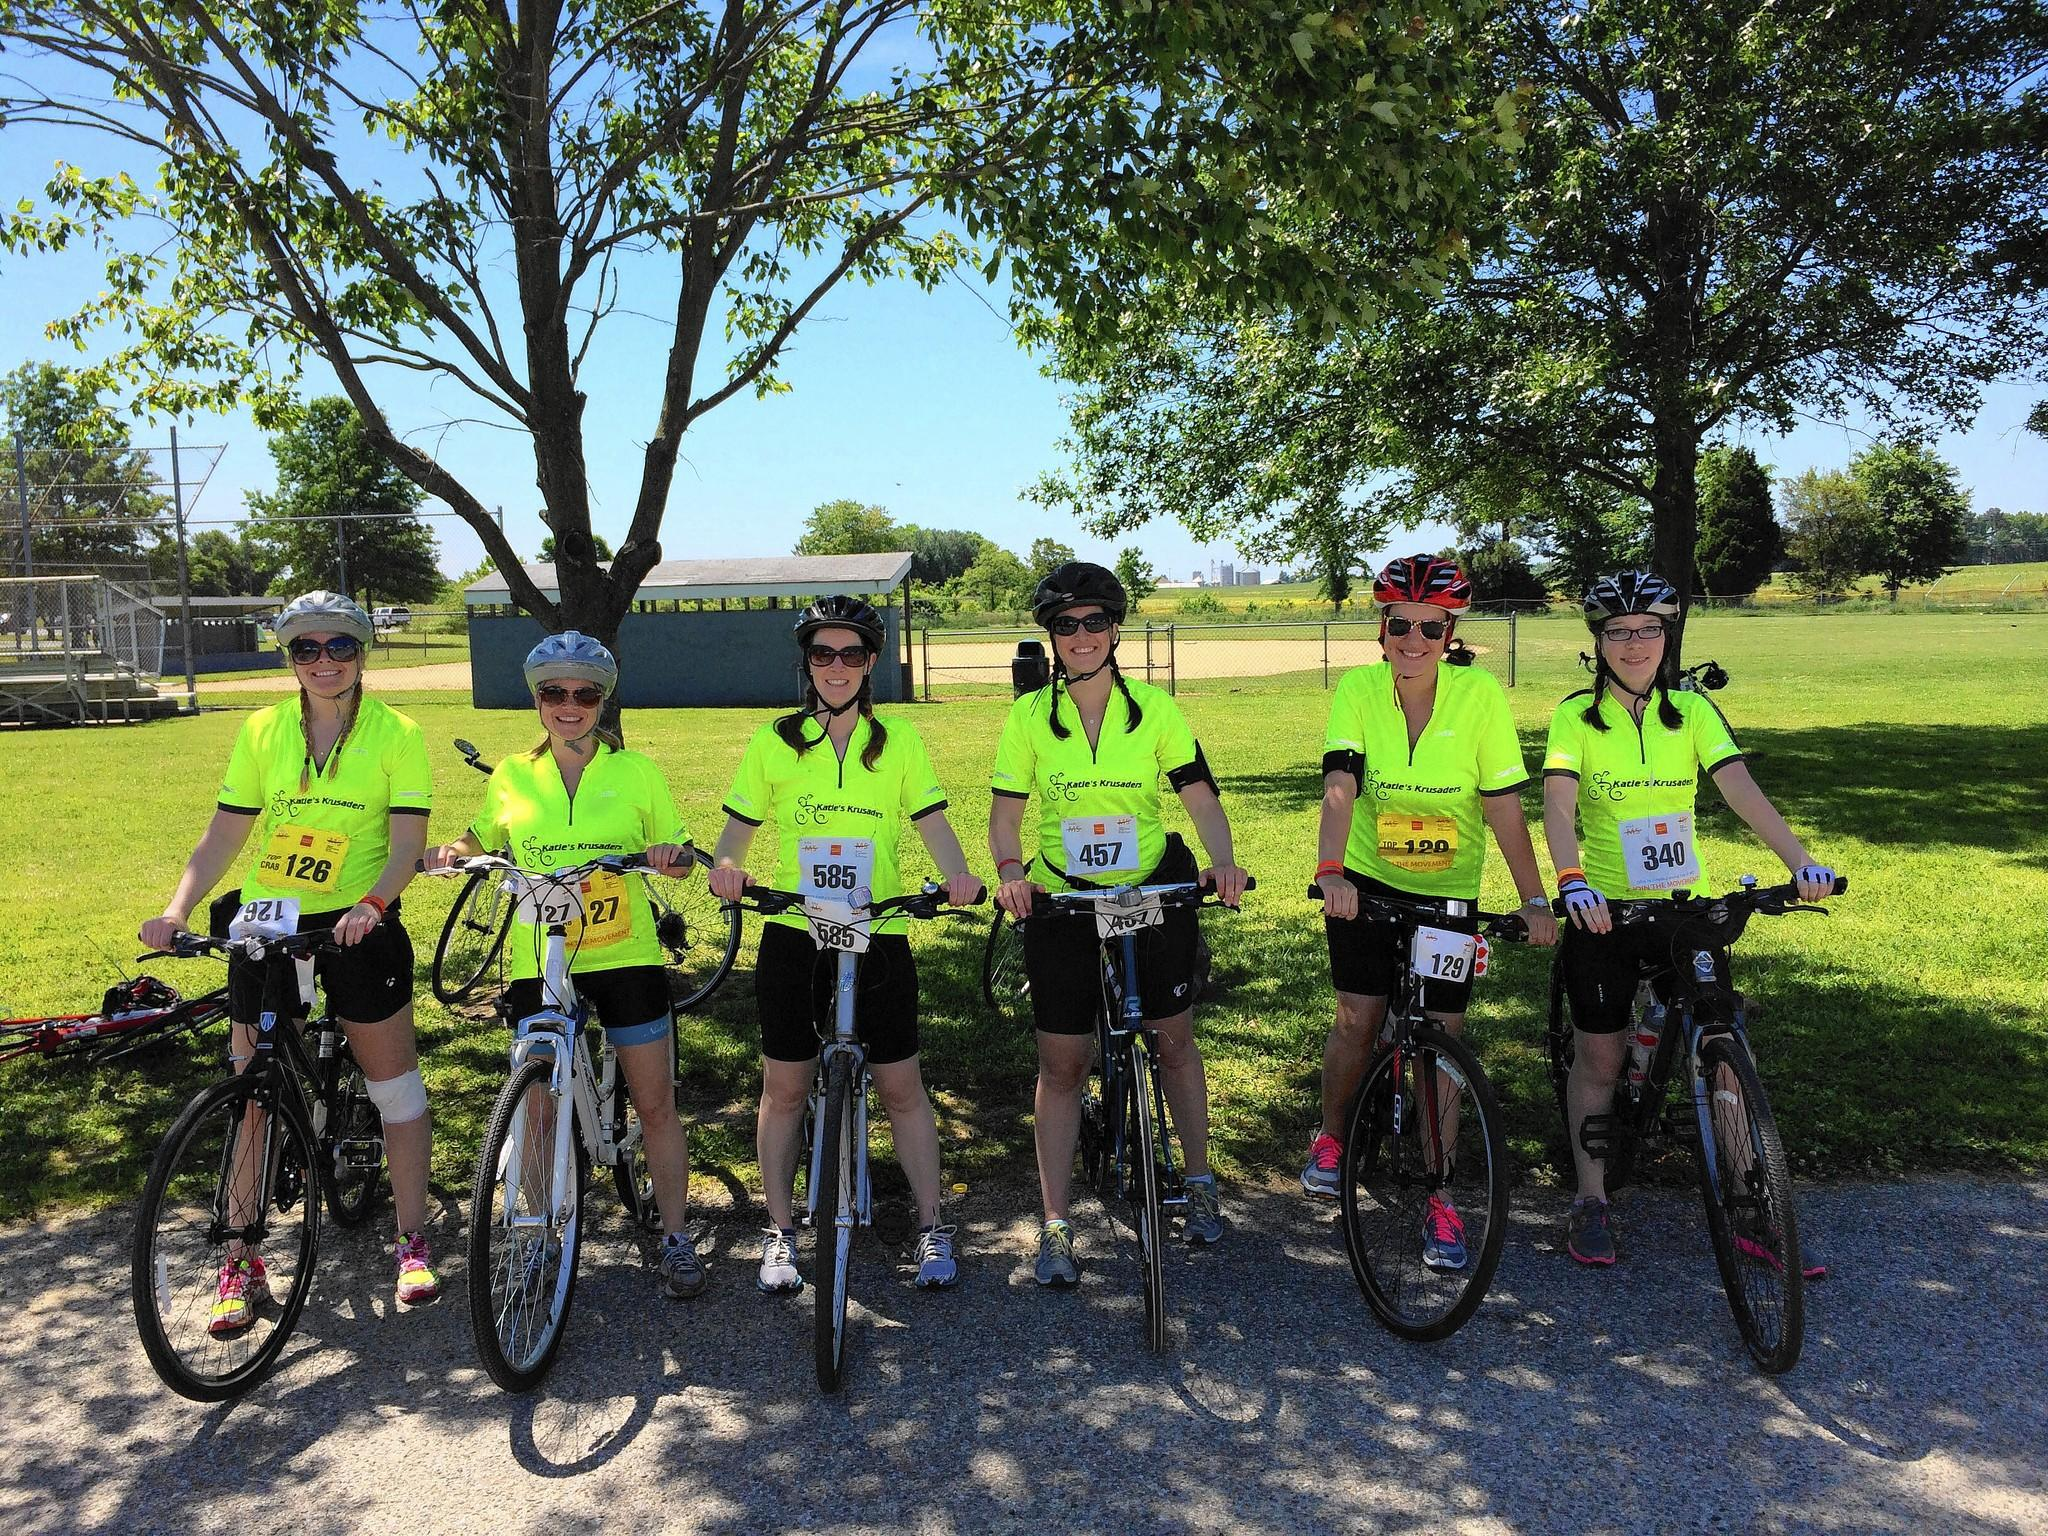 Katie's Krusaders along the MS bike challenge on the Eastern Shore included Katie Conn (second from right) and her 15-year-old sister, Grace Edwards, Colleen Cash, Ellen Laughlin, Beth Eklund and Mariellen Benedetto.